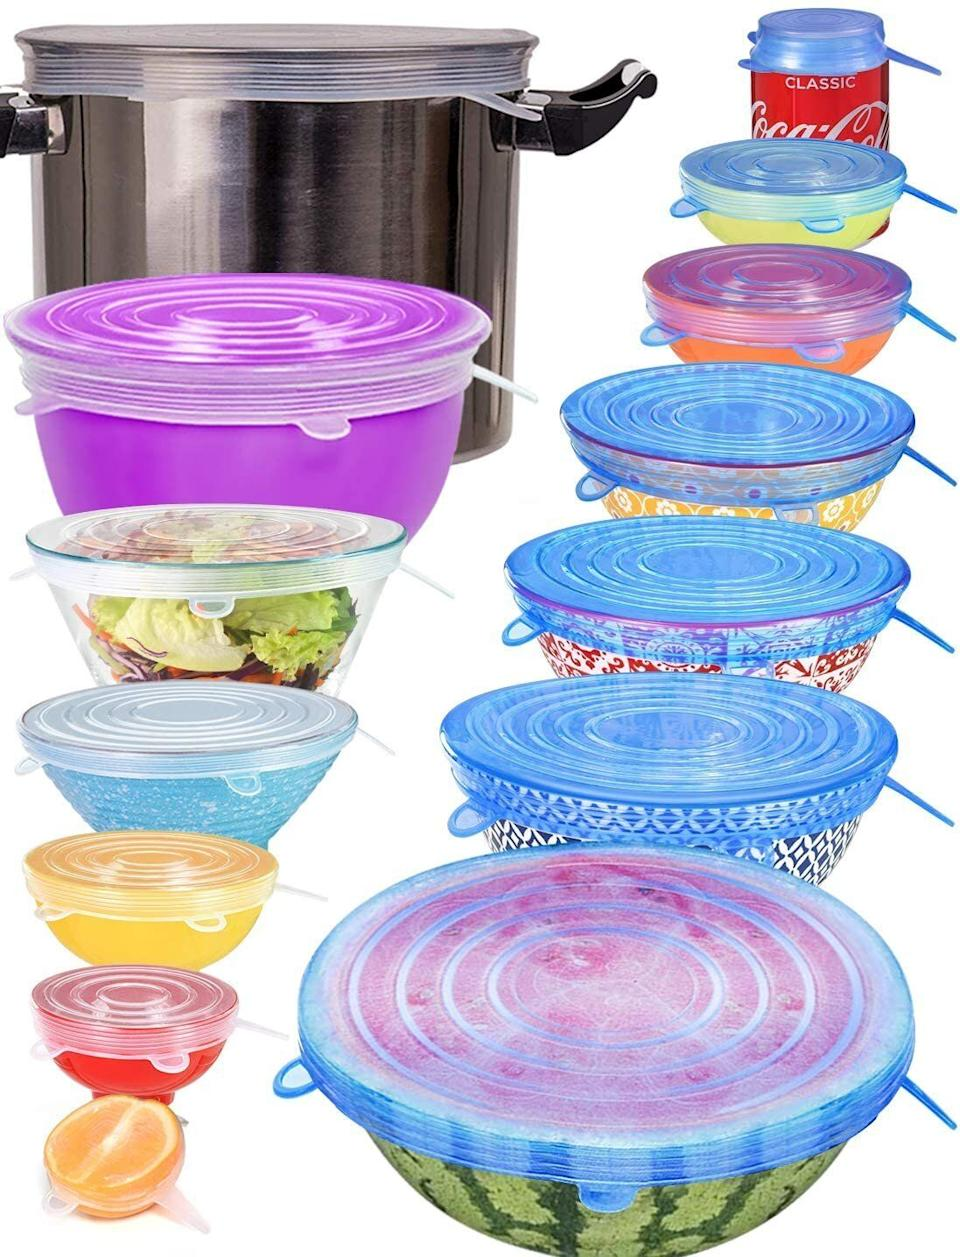 """From a can of soda to a bowl of chips, this<a href=""""https://amzn.to/35jy169"""" target=""""_blank"""" rel=""""noopener noreferrer"""">set of silicone stretch lids</a>can work when you've made a meal for yourself or after you entertain guests. (Photo: Amazon)"""